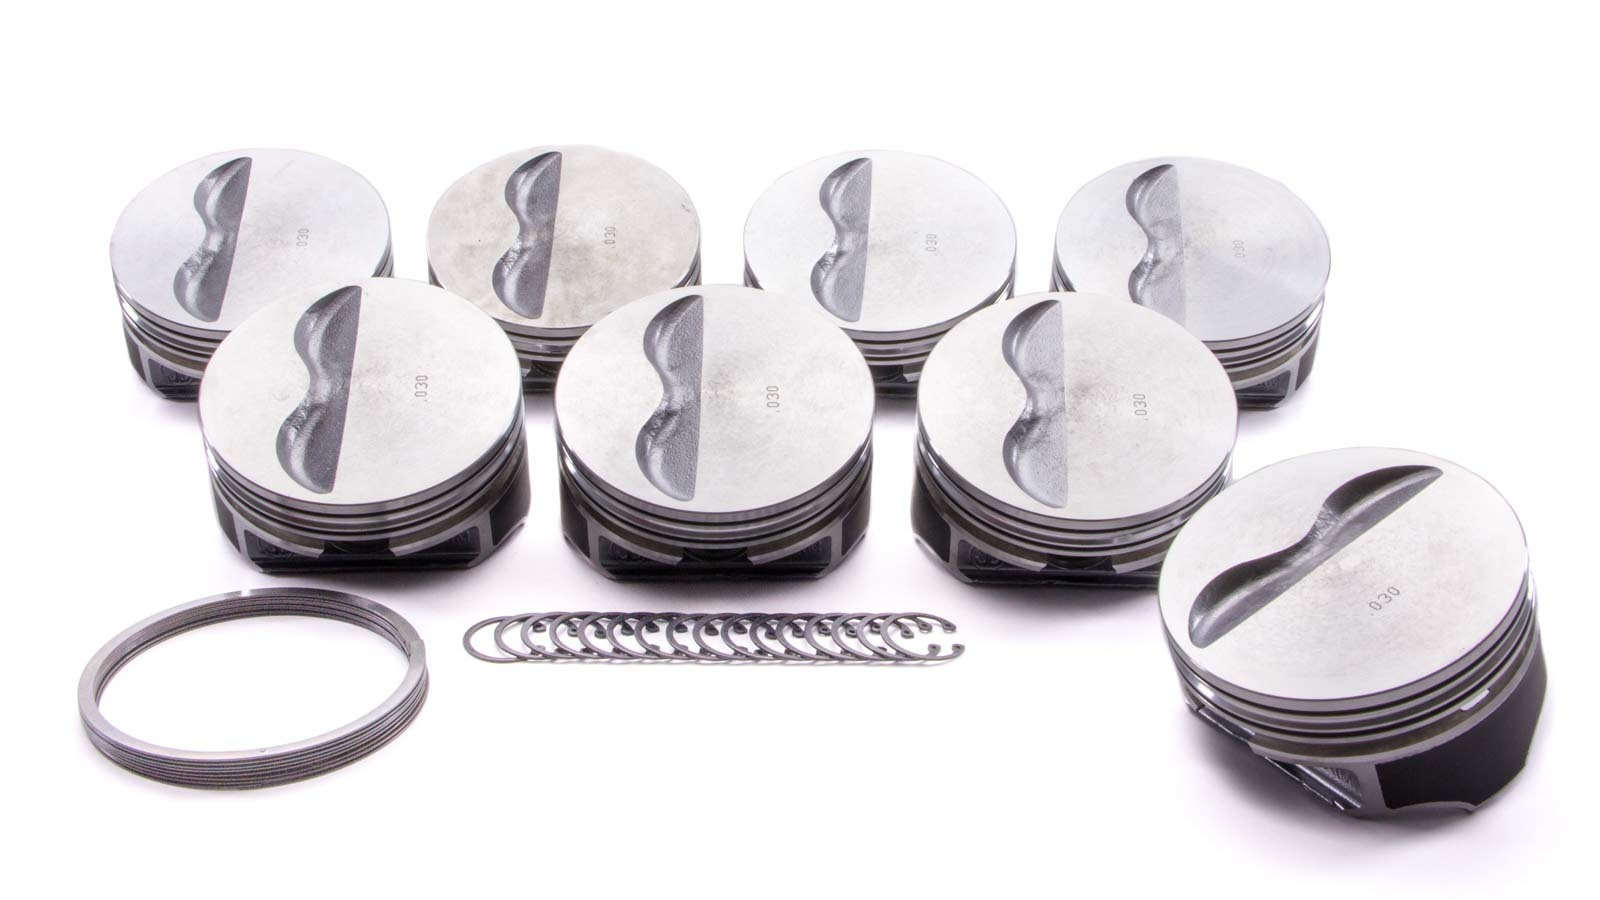 KB Performance Pistons 9908HC.030 Piston, Claimer Series, Hypereutectic, 4.030 in Bore, 5/64 x 5/64 x 3/16 in Ring Grooves, Minus 5.0 cc, Small Block Chevy, Set of 8